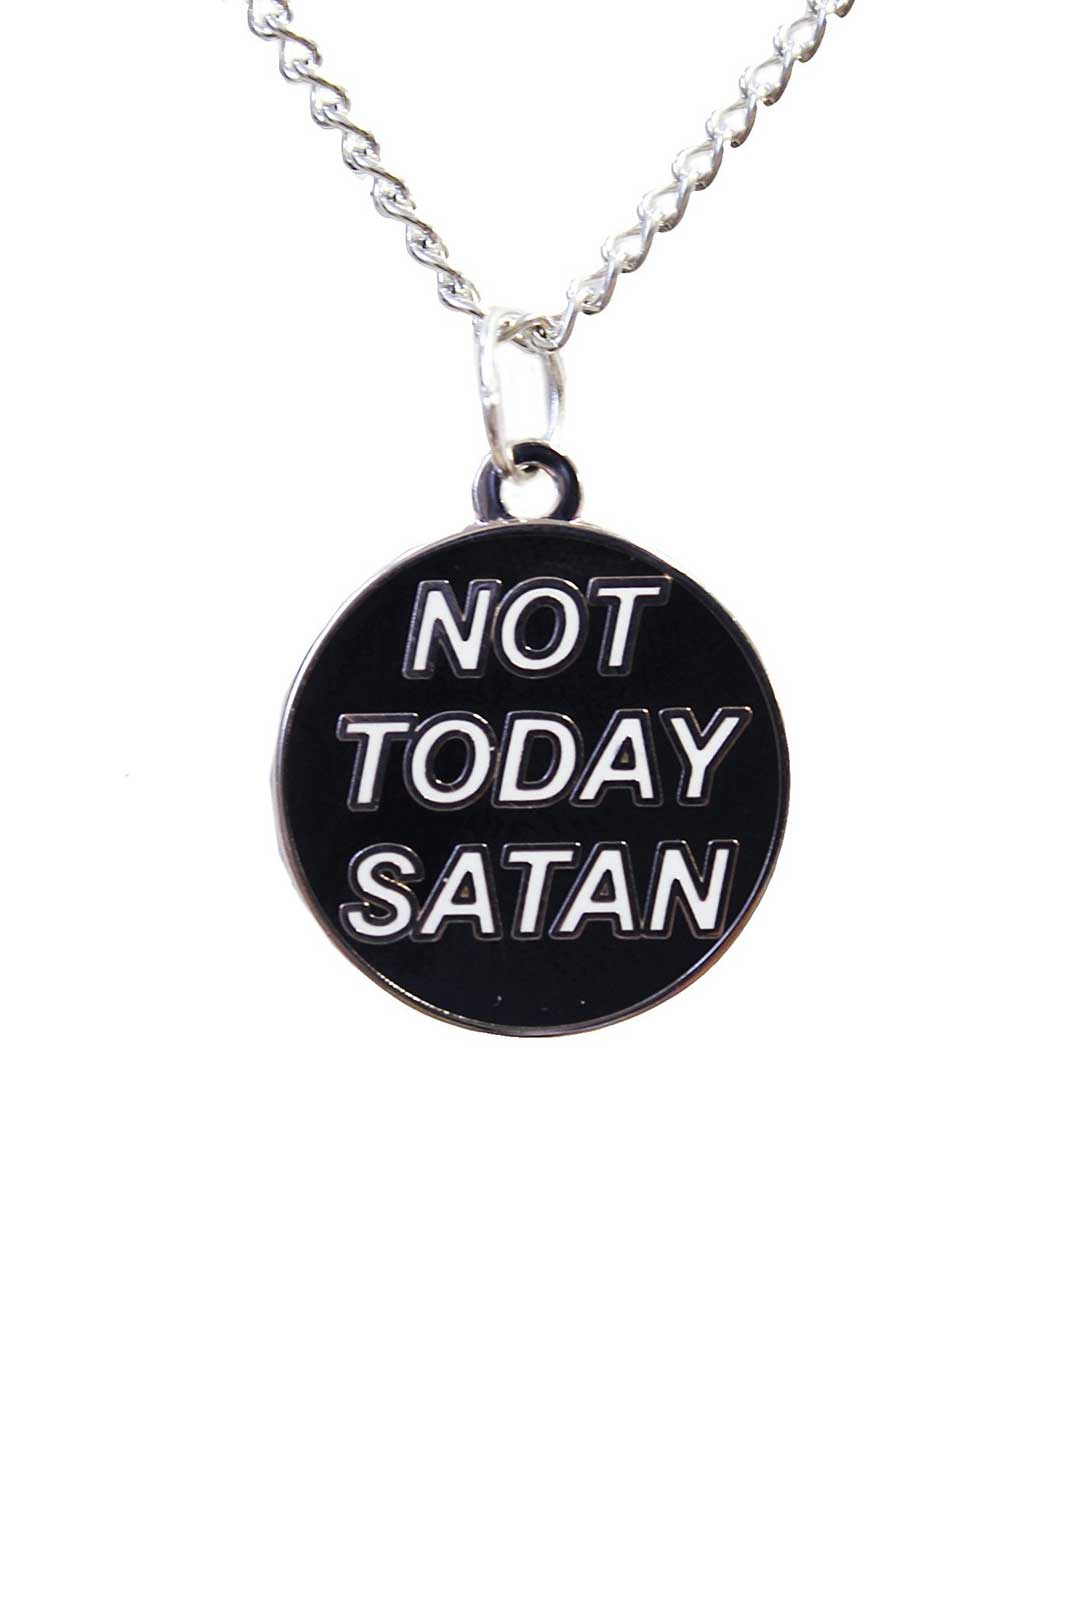 Not Today Satan Chain Necklace